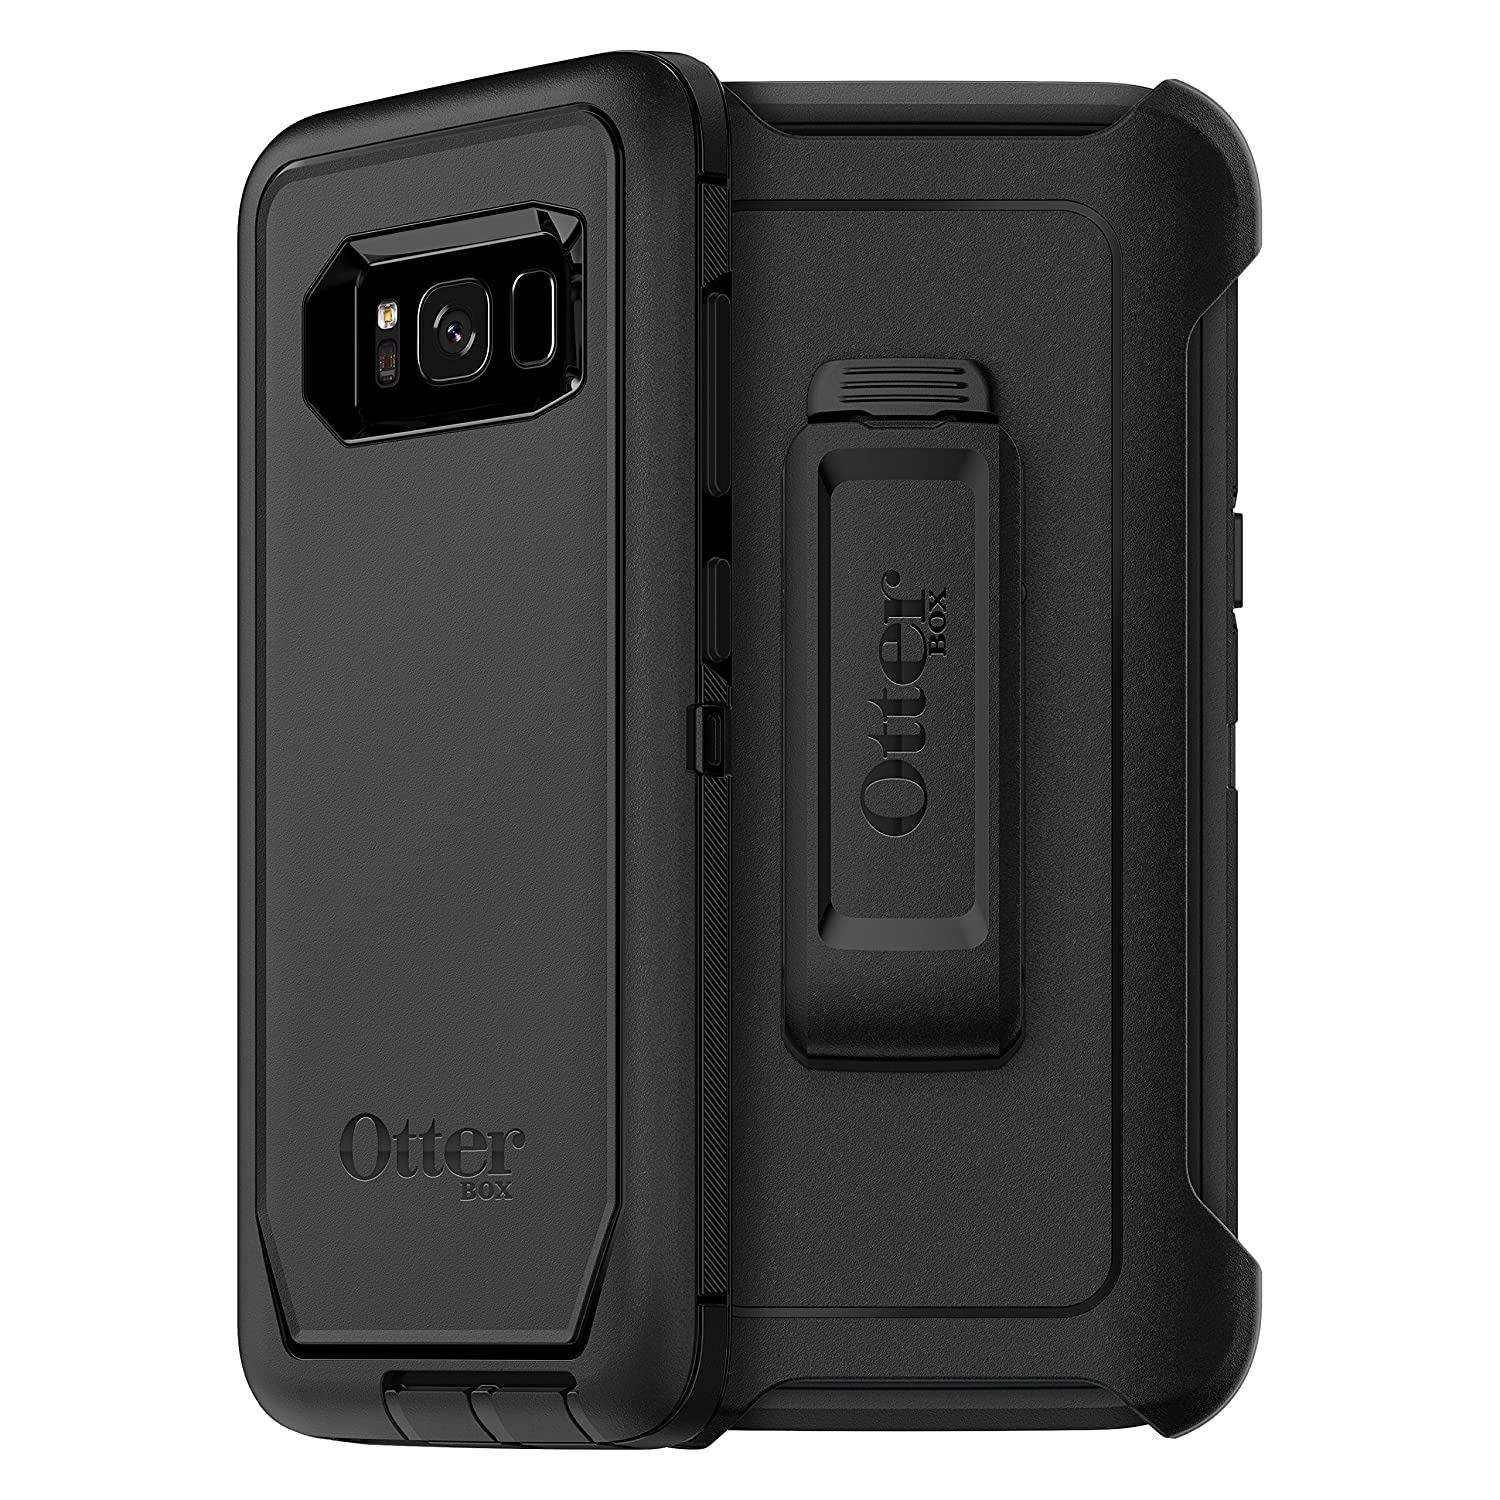 OtterBox DEFENDER SERIES SCREENLESS EDITION for Samsung Galaxy S8 Retail Packaging BLACK